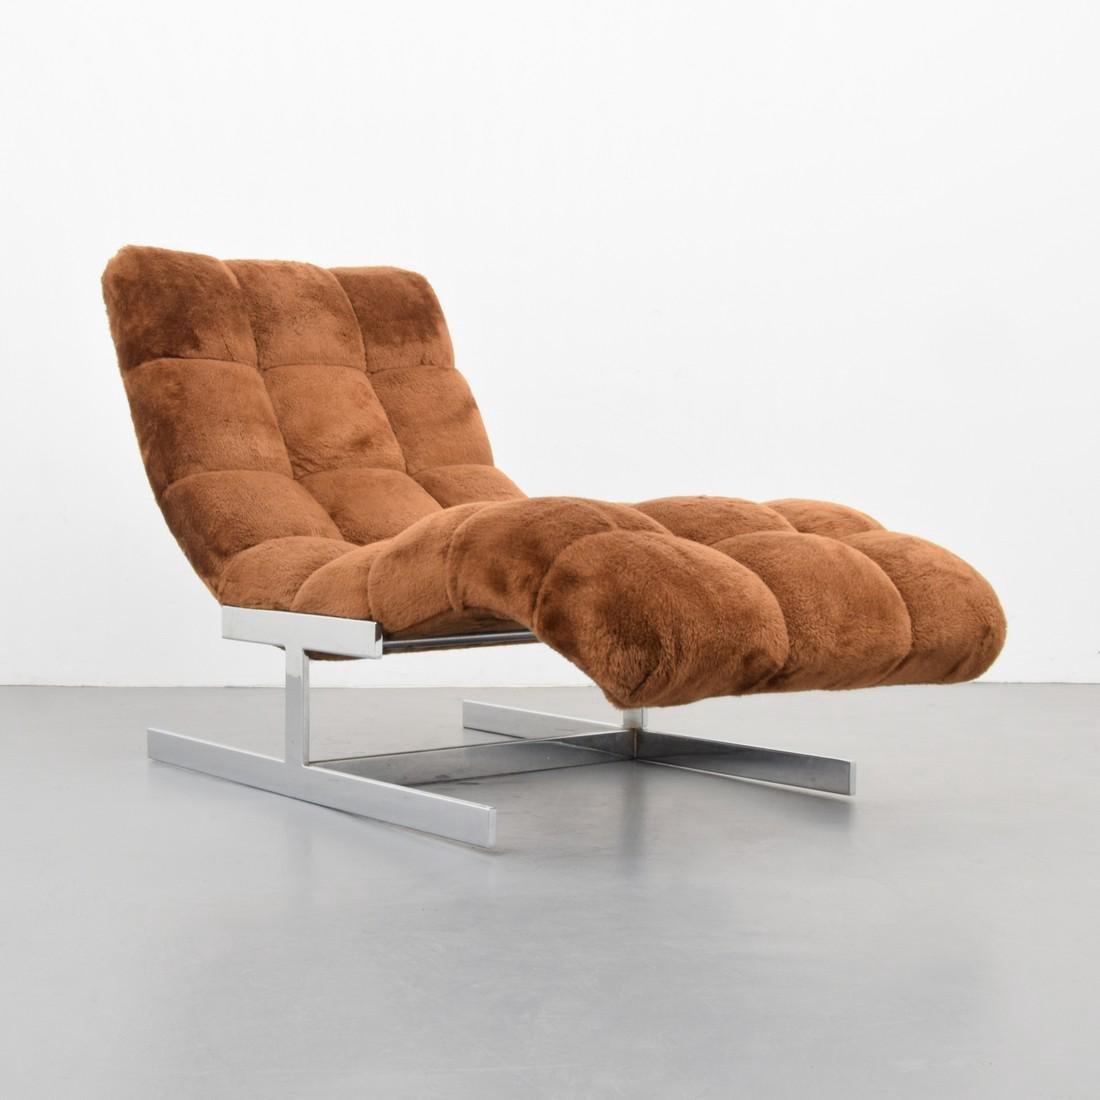 Chaise Lounge Chair, Manner of Milo Baughman